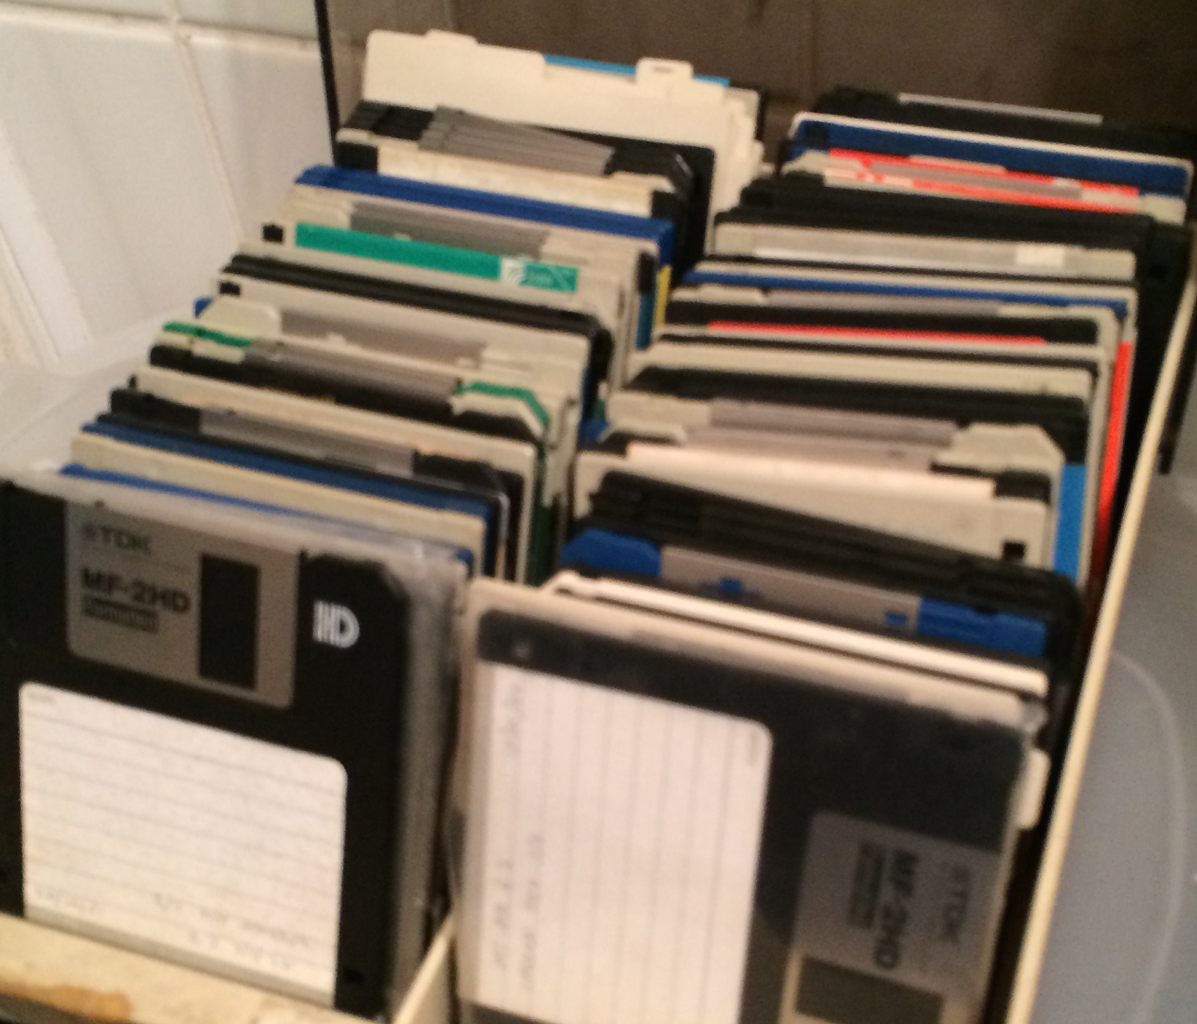 Look for an Old Floppy Disk... Remove the Old Label and Clean It.